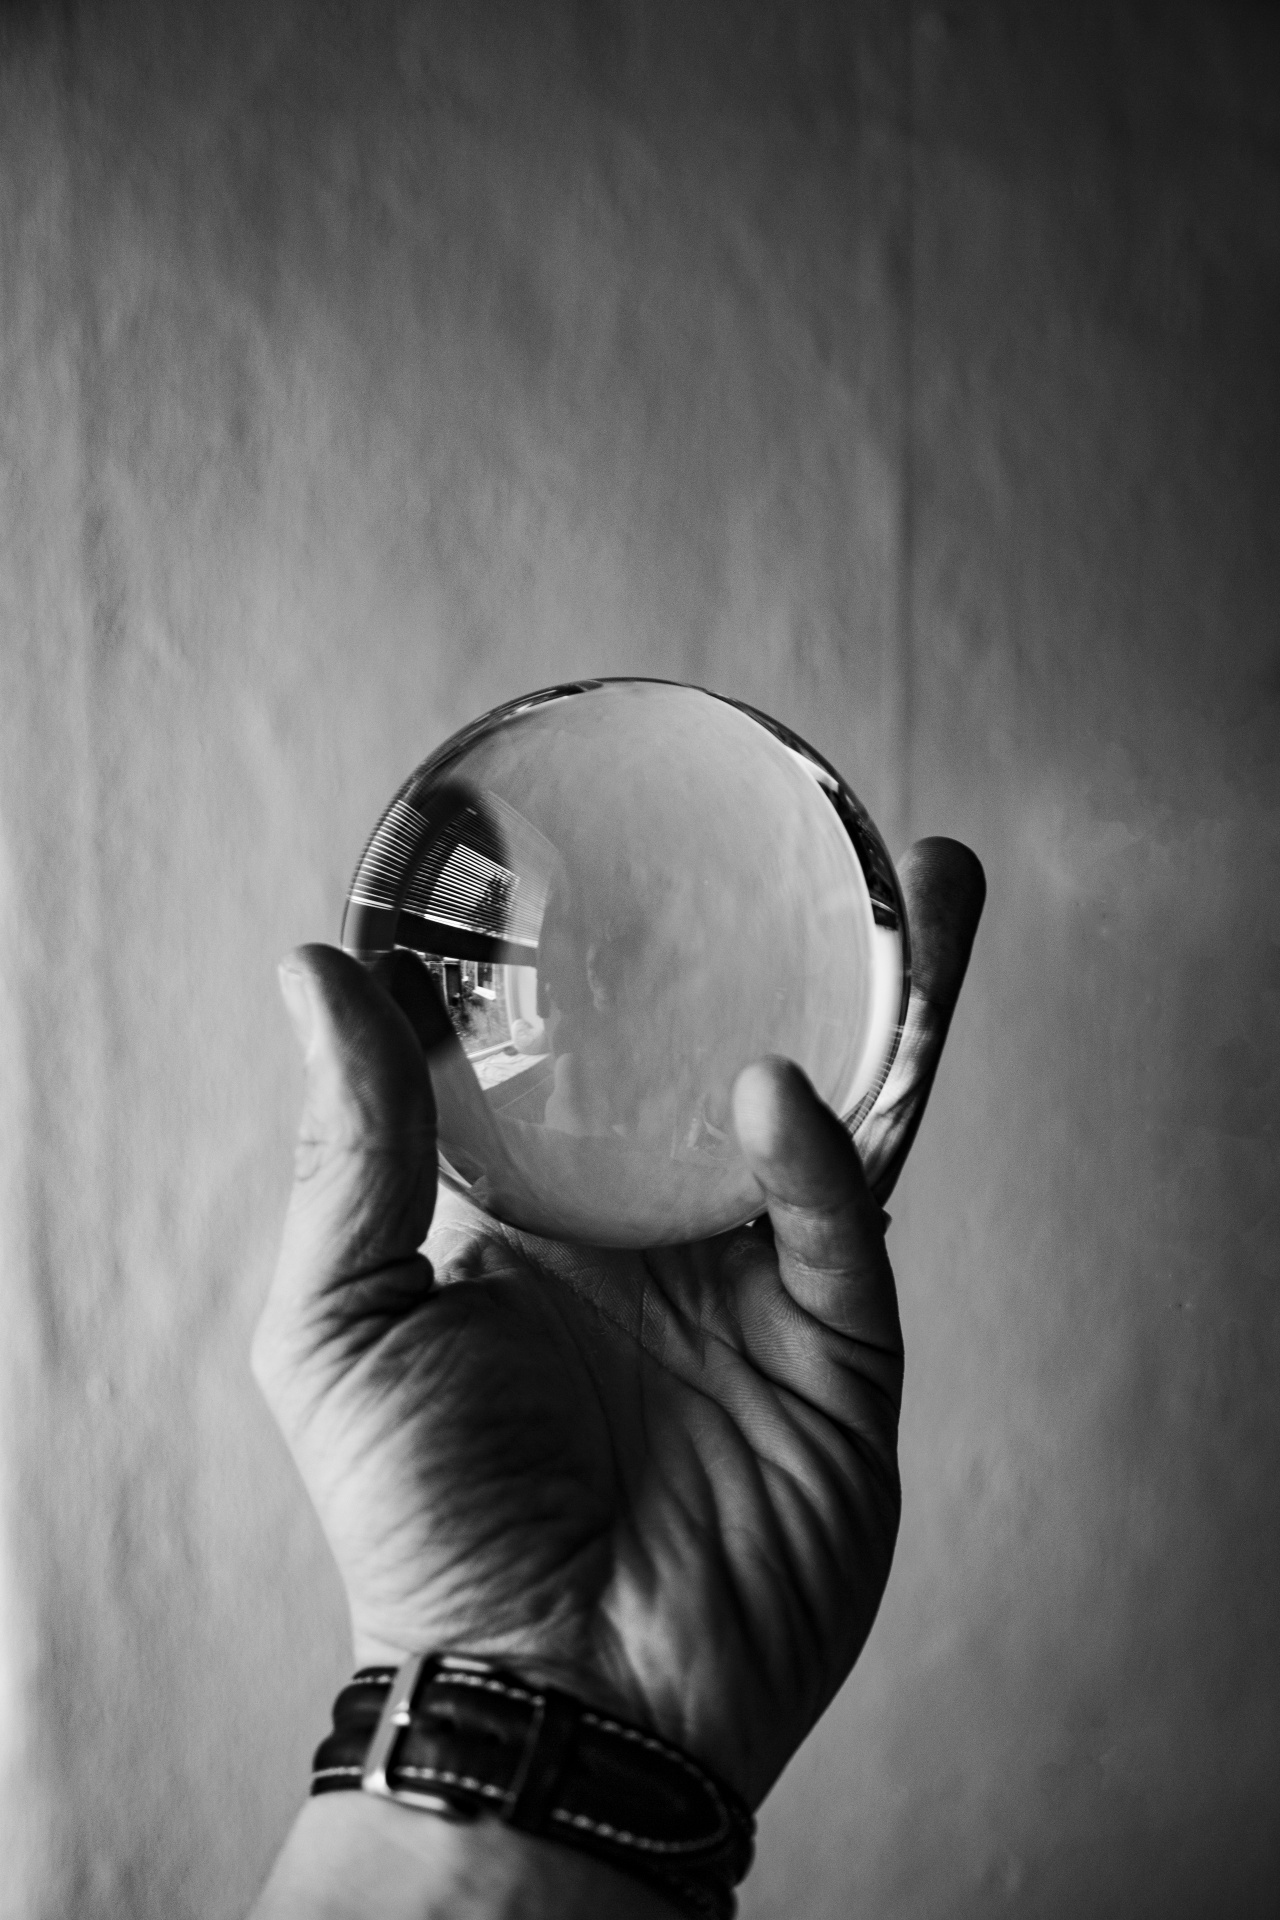 glass-ball-in-hand